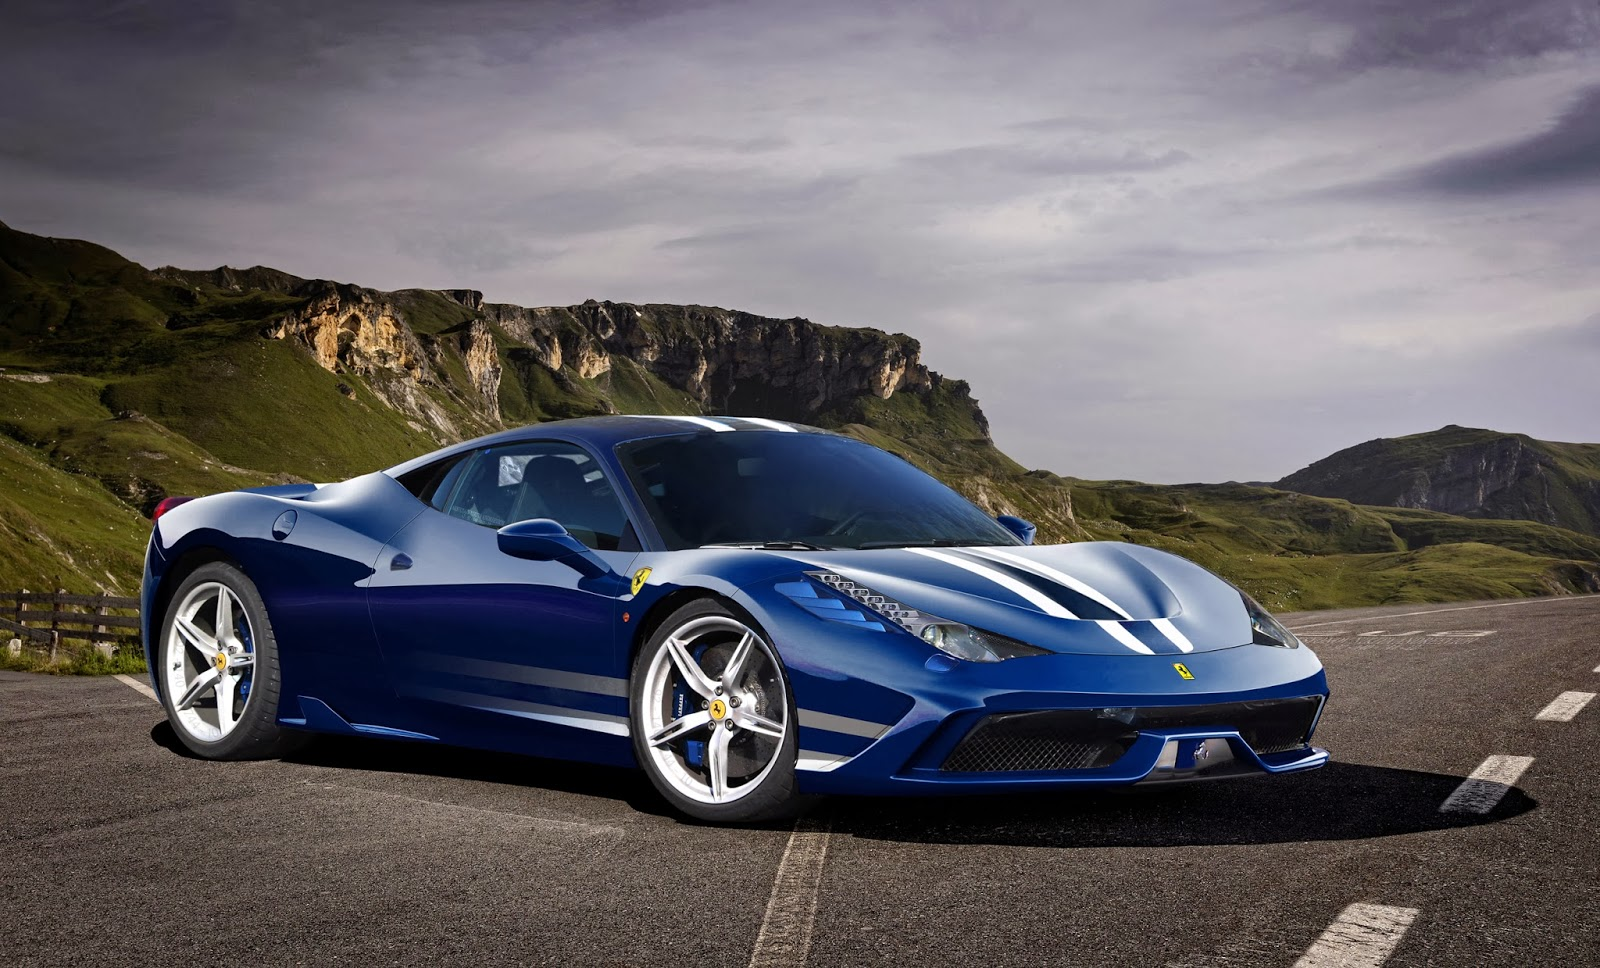 Ferrari Italia Blue Car HD Wallpaper   Sport Cars HD 1600x968